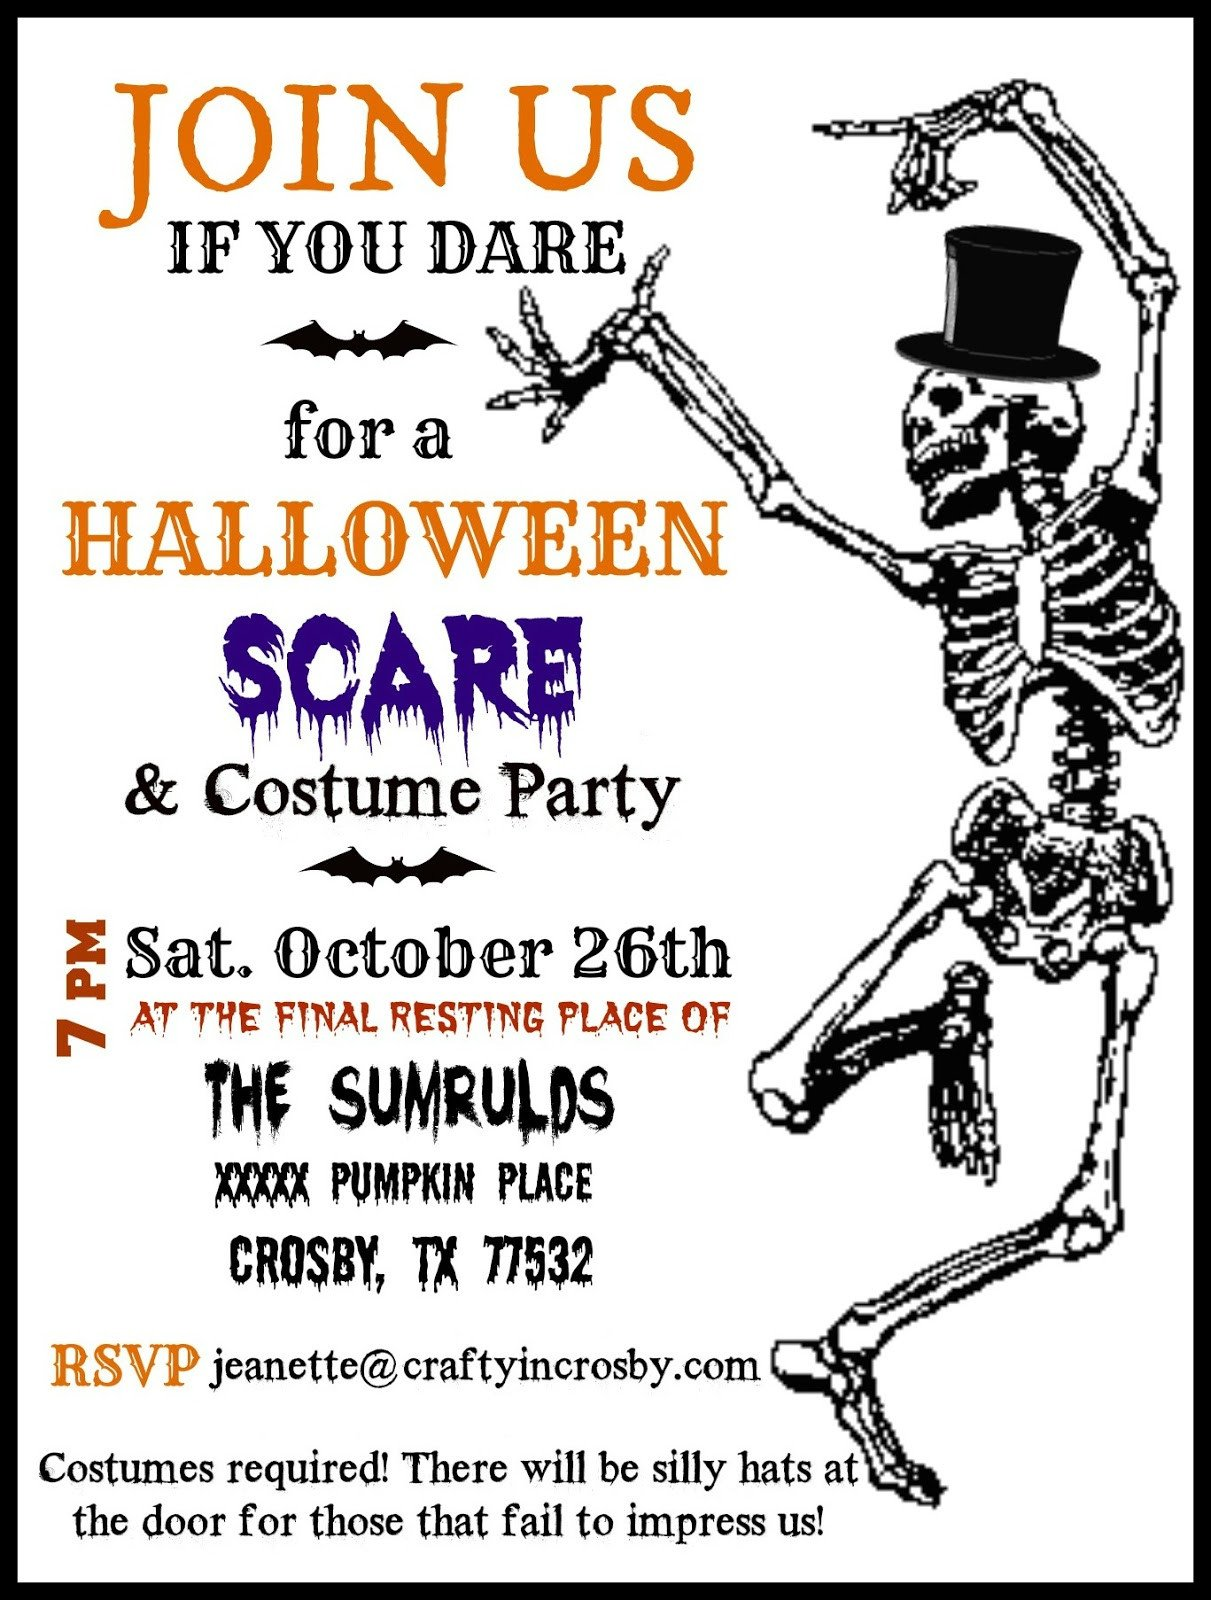 Free Halloween Invite Templates Crafty In Crosby Halloween Party Invitations with Template